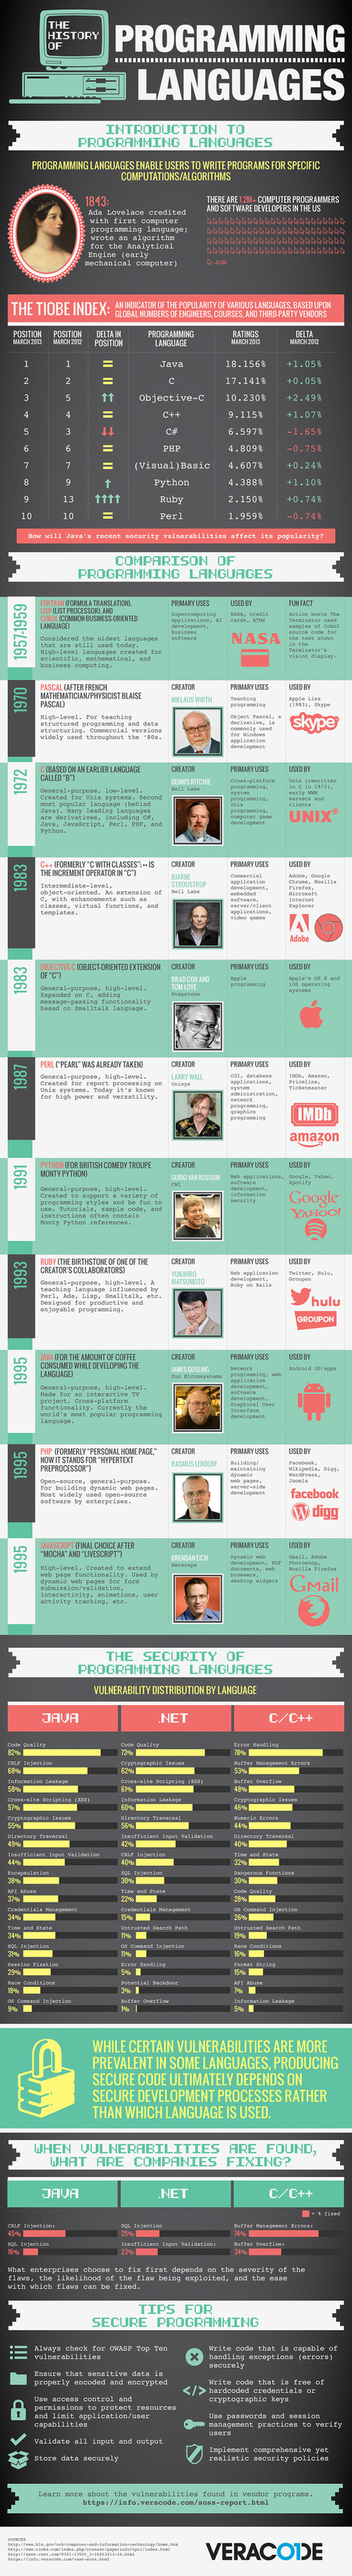 Infographic: The History of Programming Languages | bytetime | Scoop.it